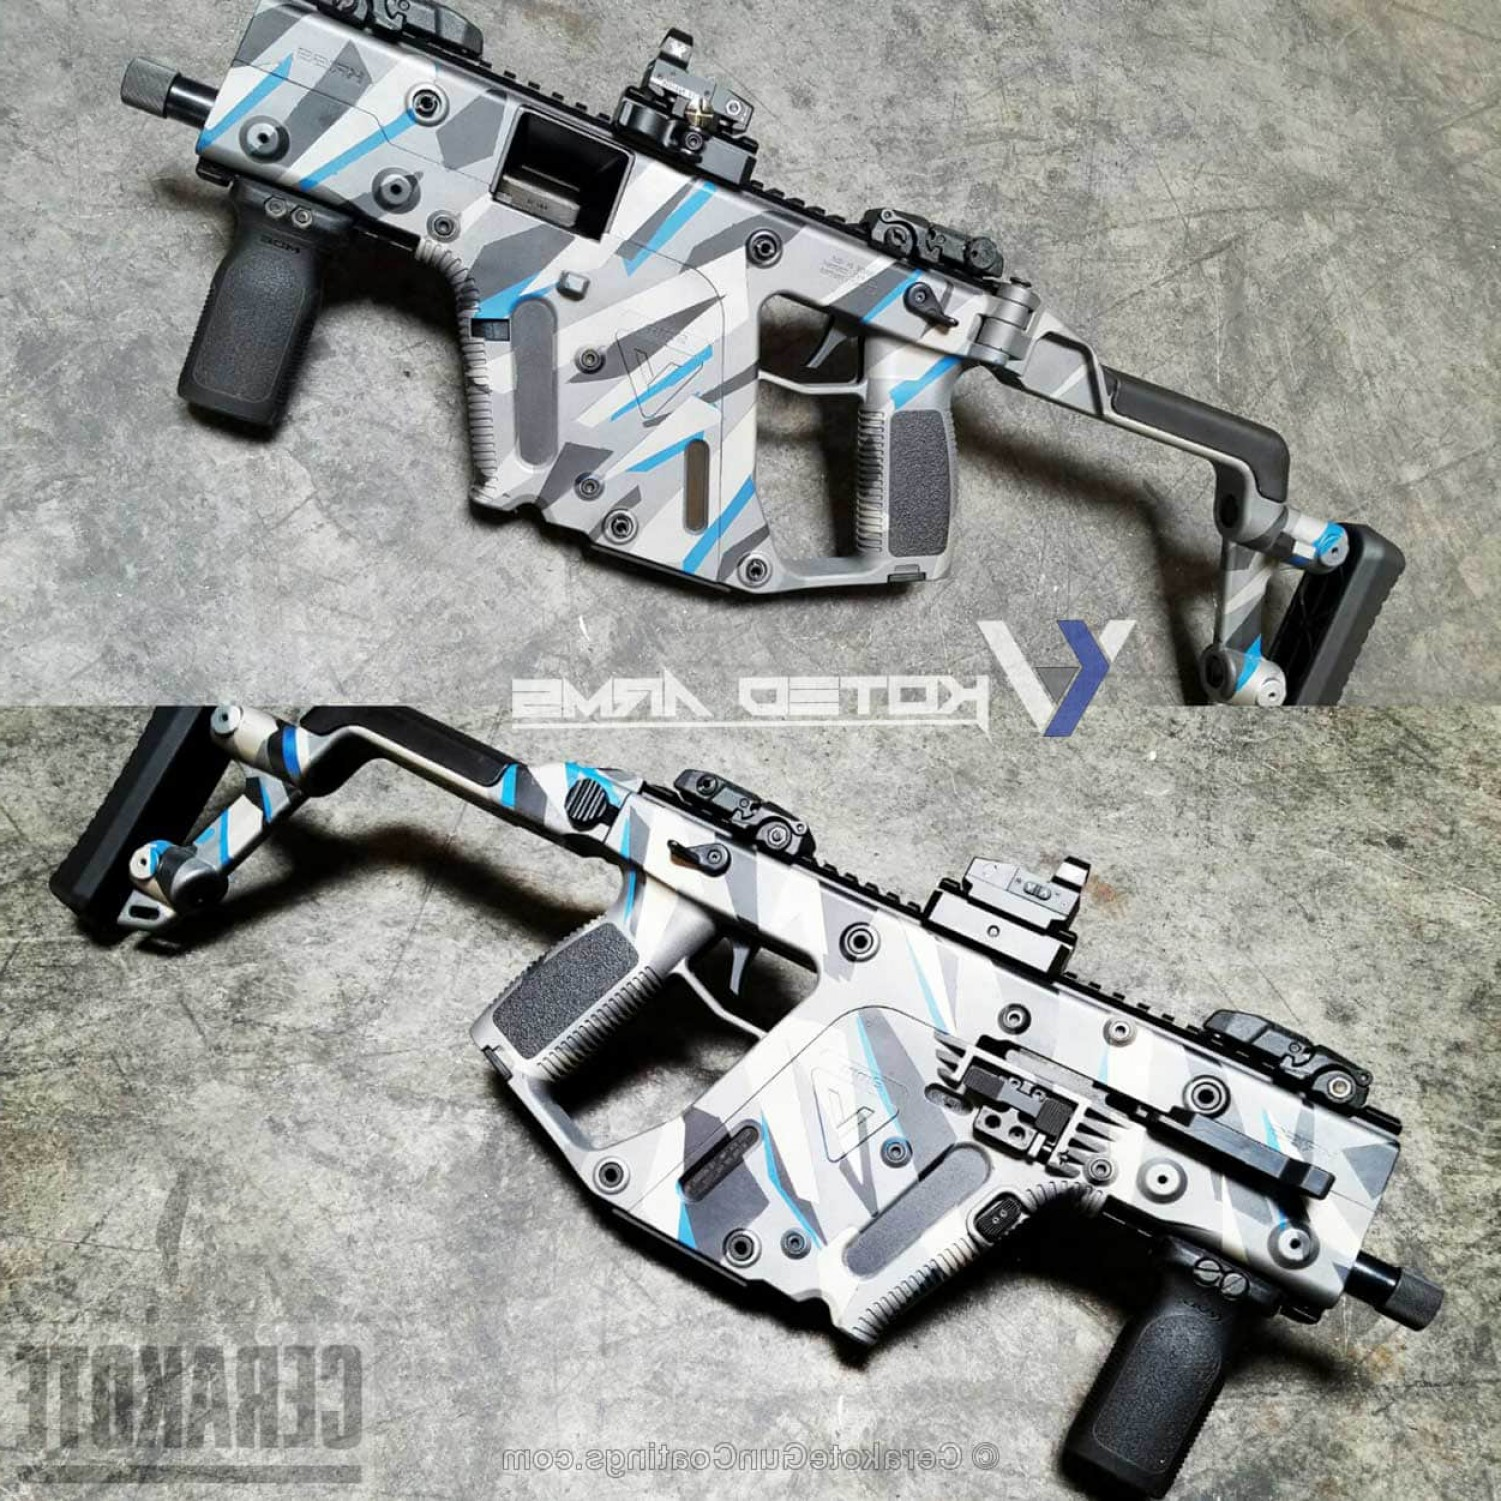 Tactical Vector: Cerakote H Graphite Black H Ridgeway Blue H Titanium And H Tactical Grey